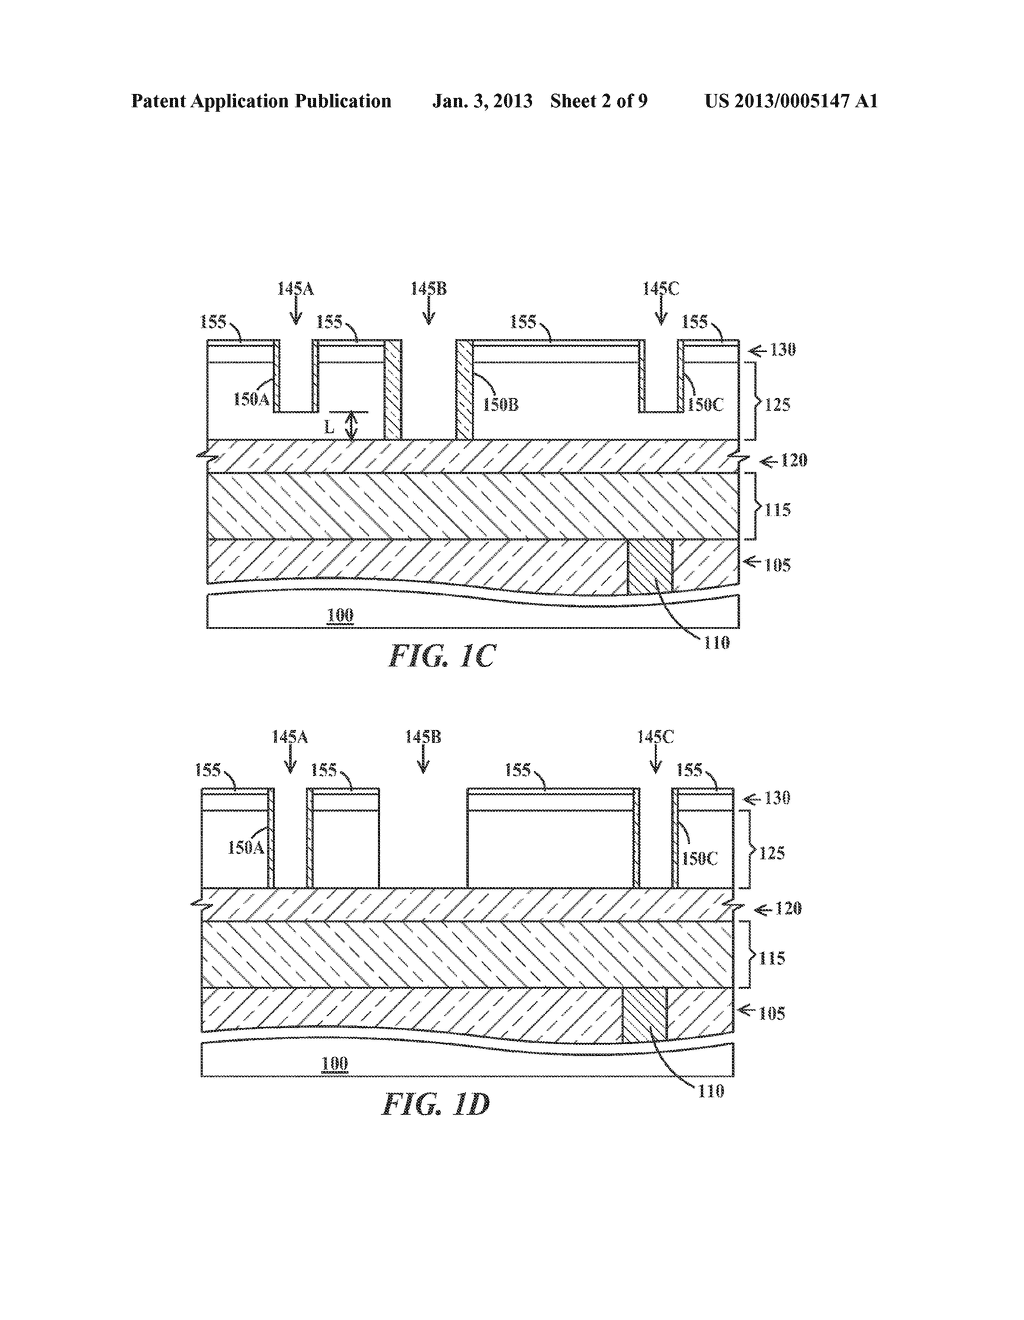 METHOD OF REDUCING CRITICAL DIMENSION PROCESS BIAS DIFFERENCES